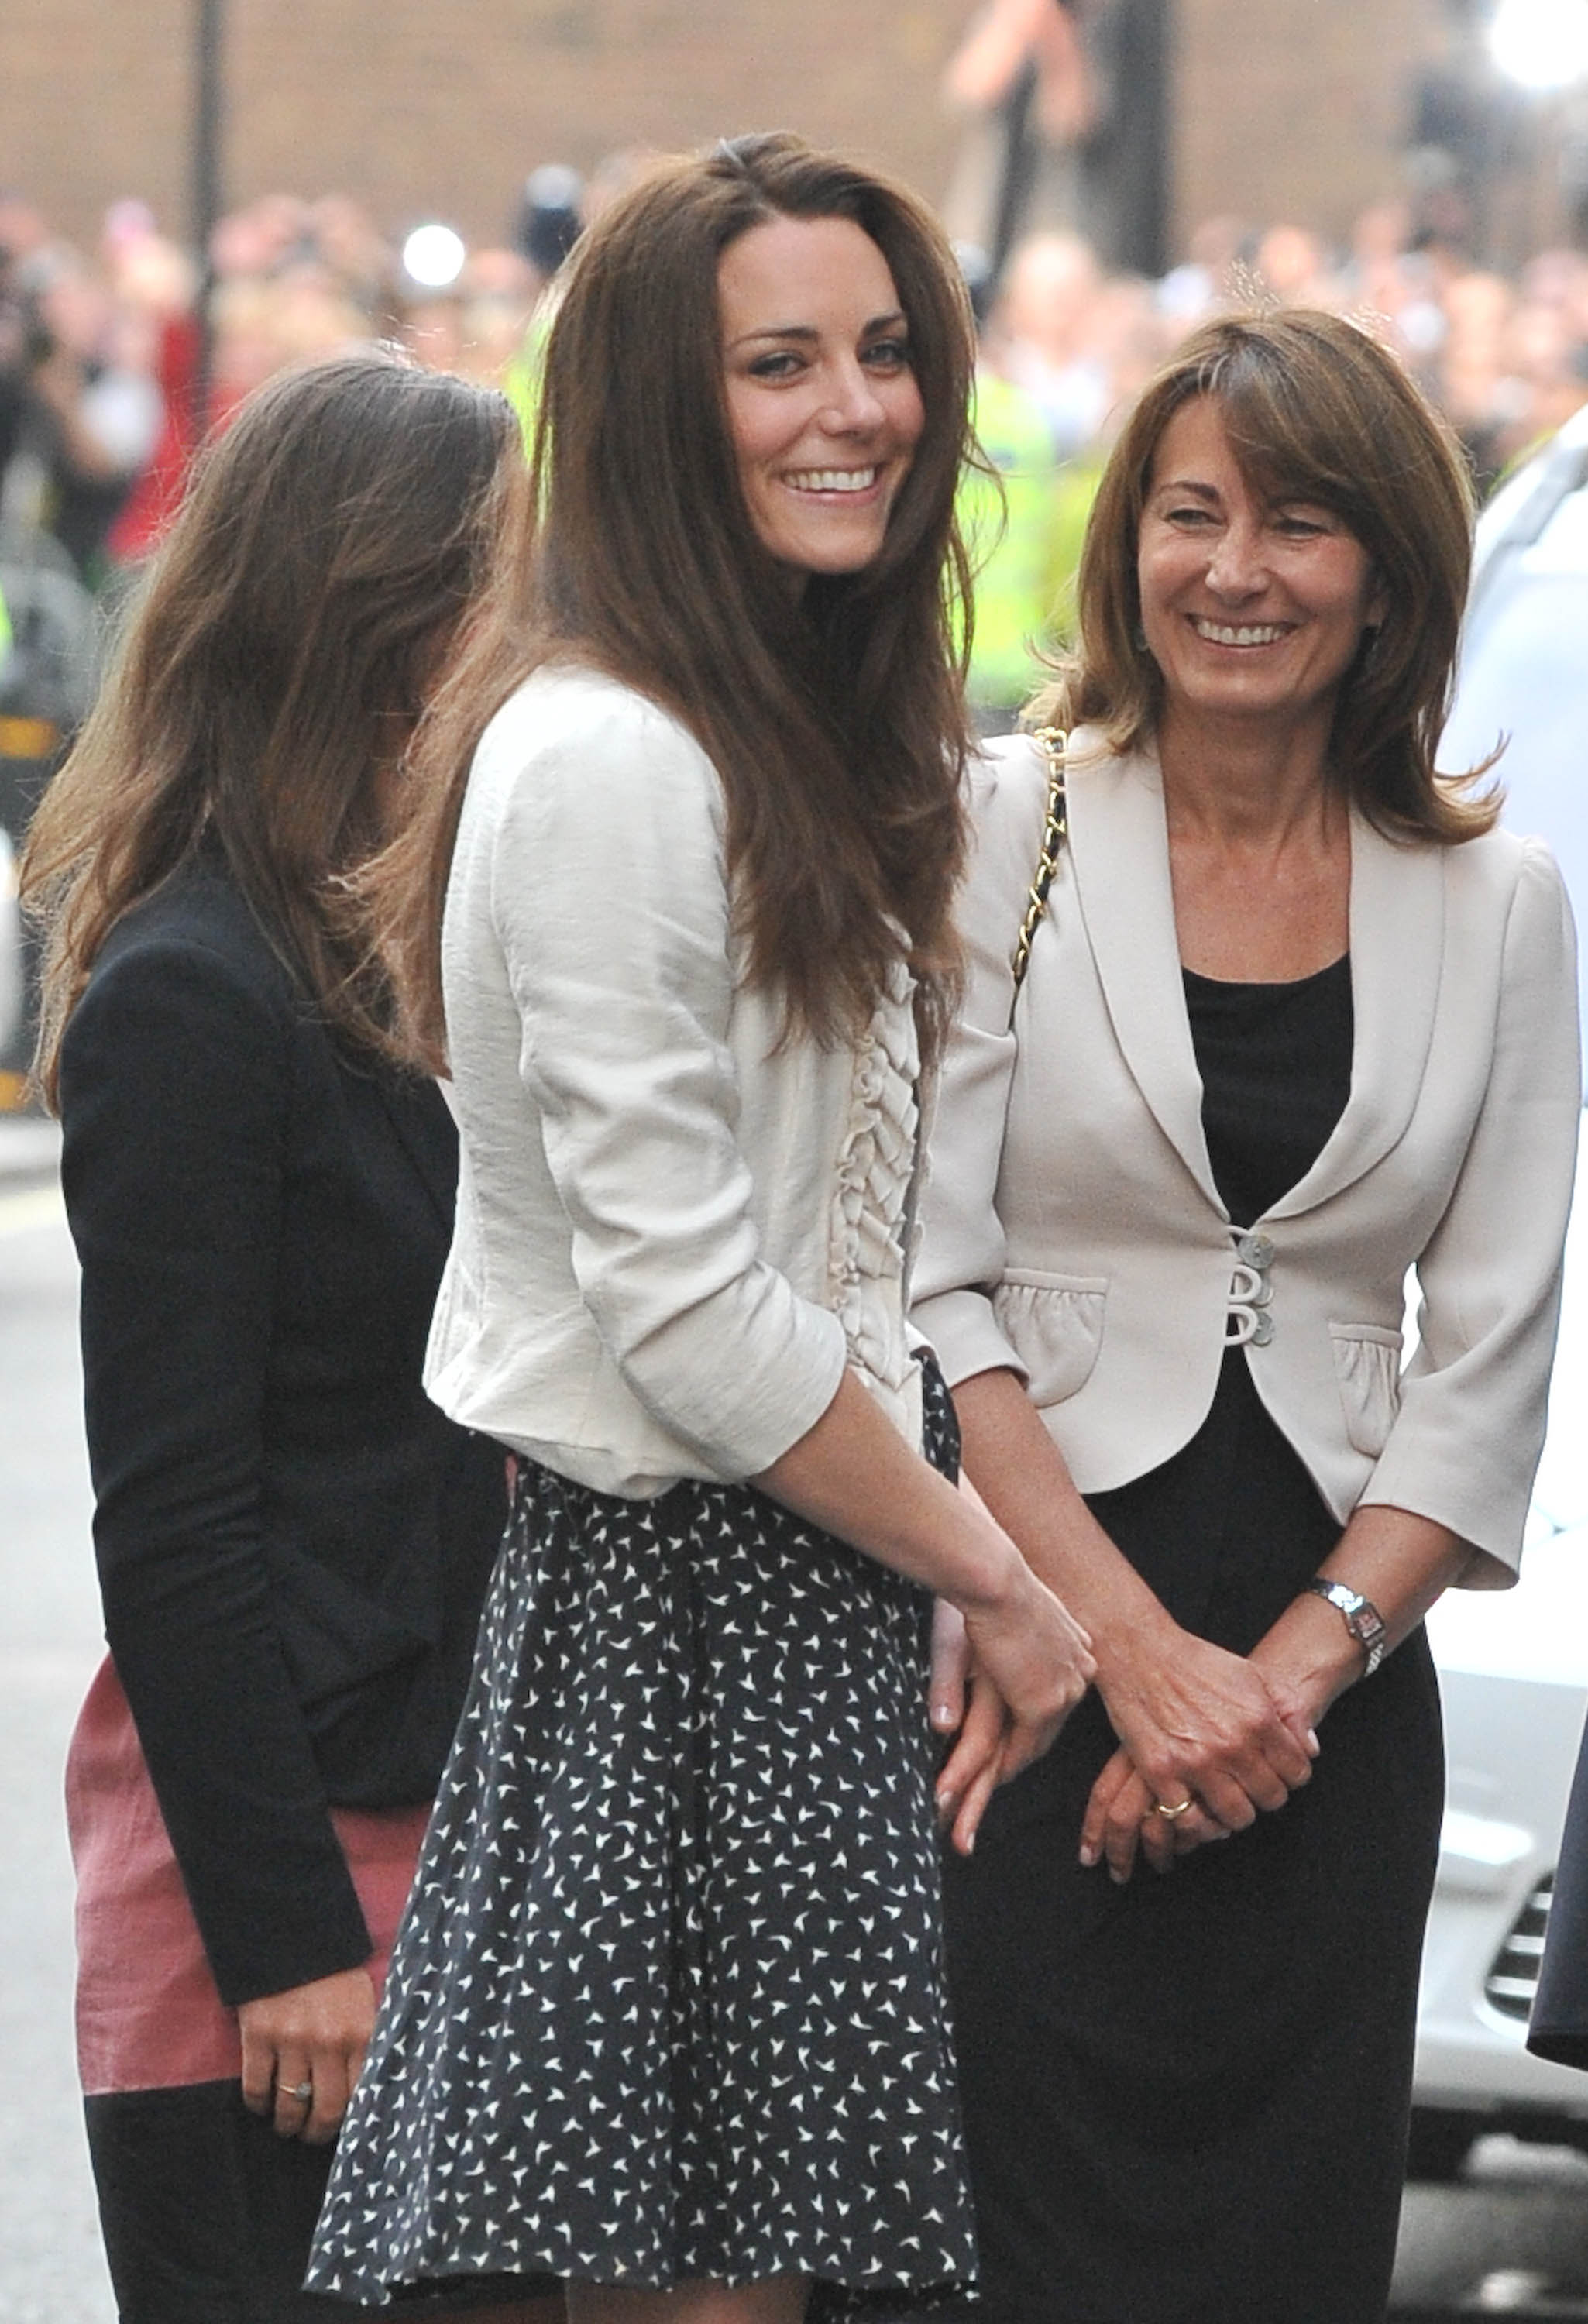 Kate Middleton Check In Getty Images